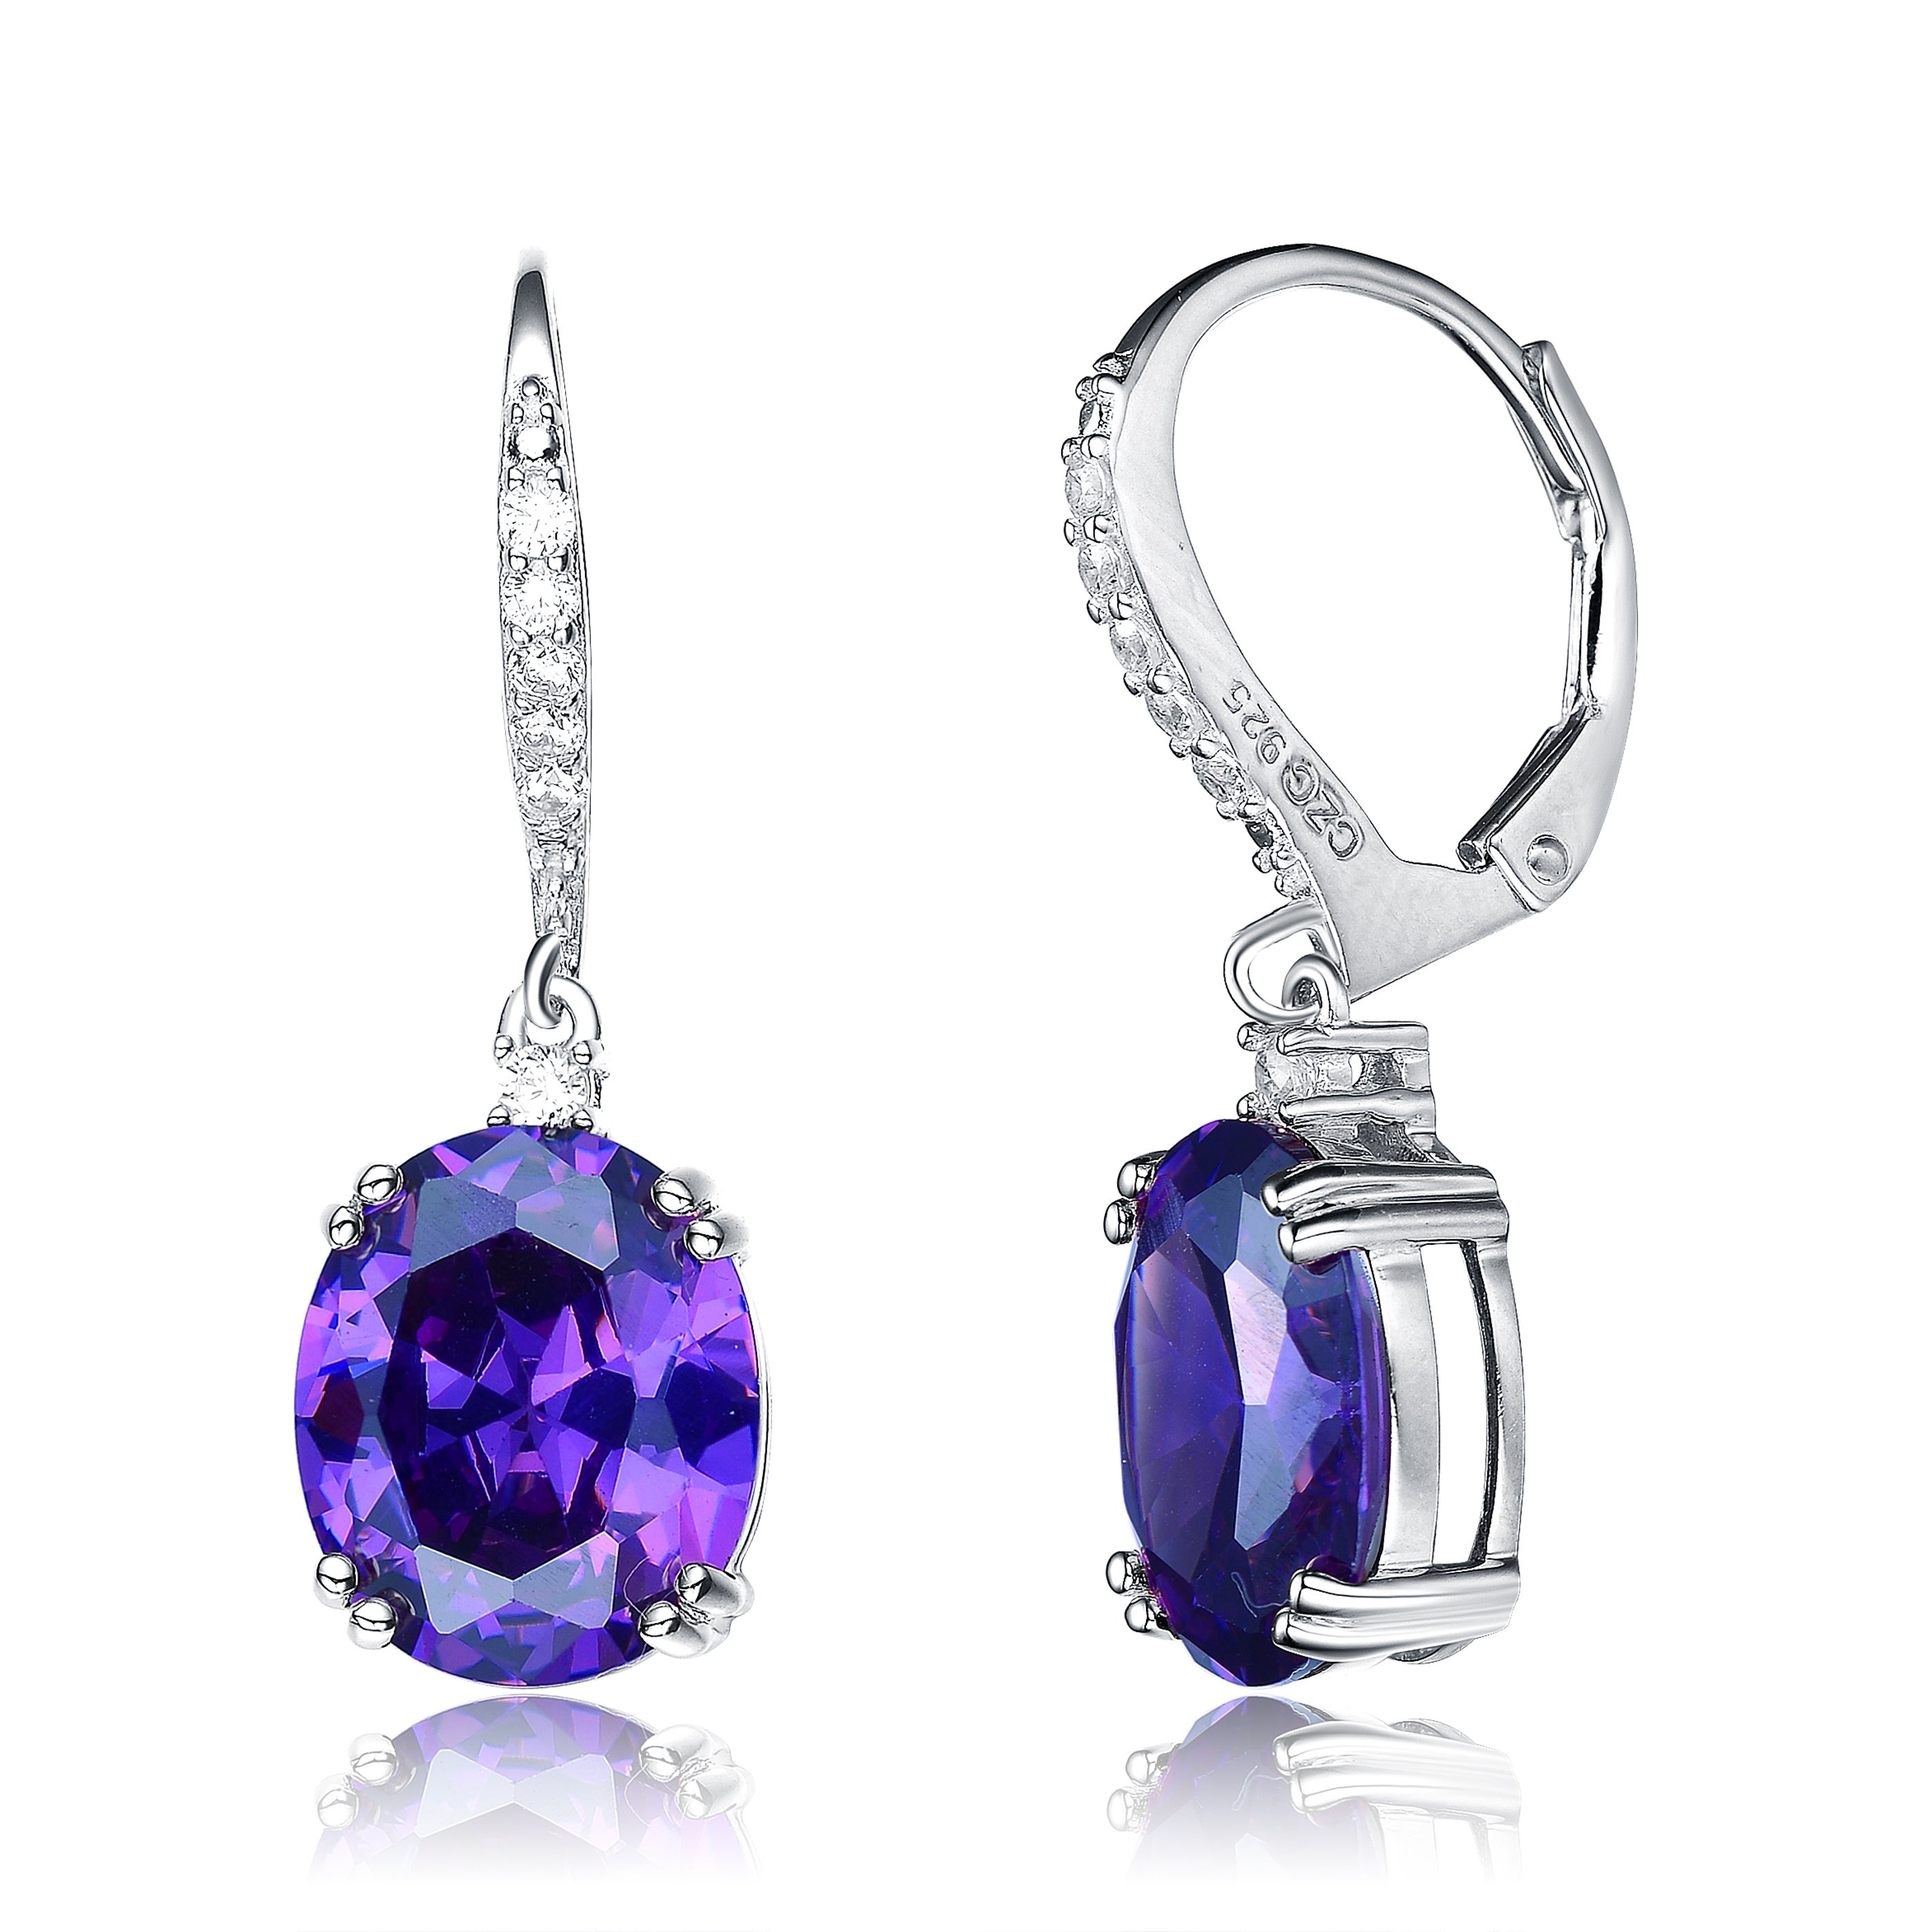 big fashion purple quality earrings elegant colors gold women drop high romantic in hyperbole from color item cubic plated jewelry earring zircon